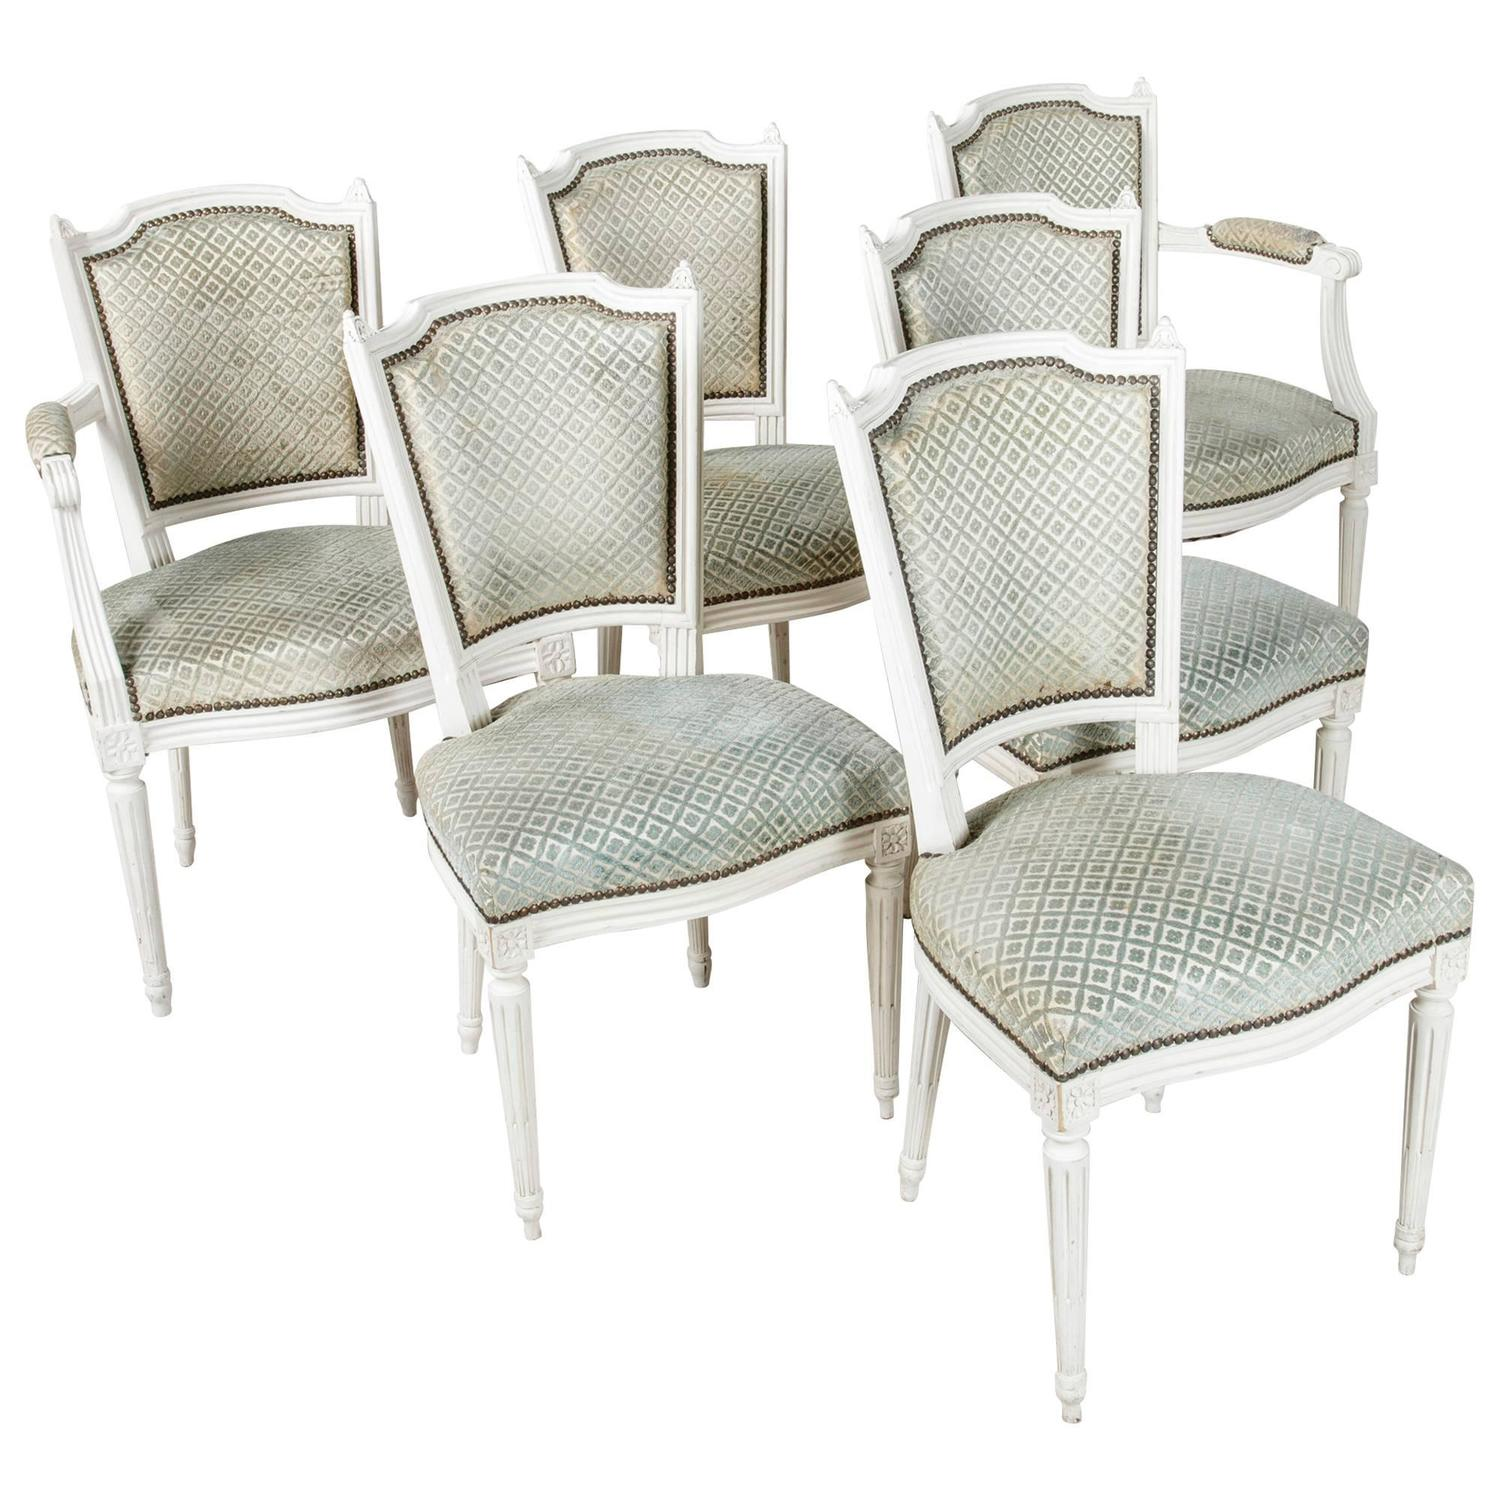 Set of louis xvi style dining chairs painted white with nailhead upholstery for sale at 1stdibs - Nailhead dining room chairs ...